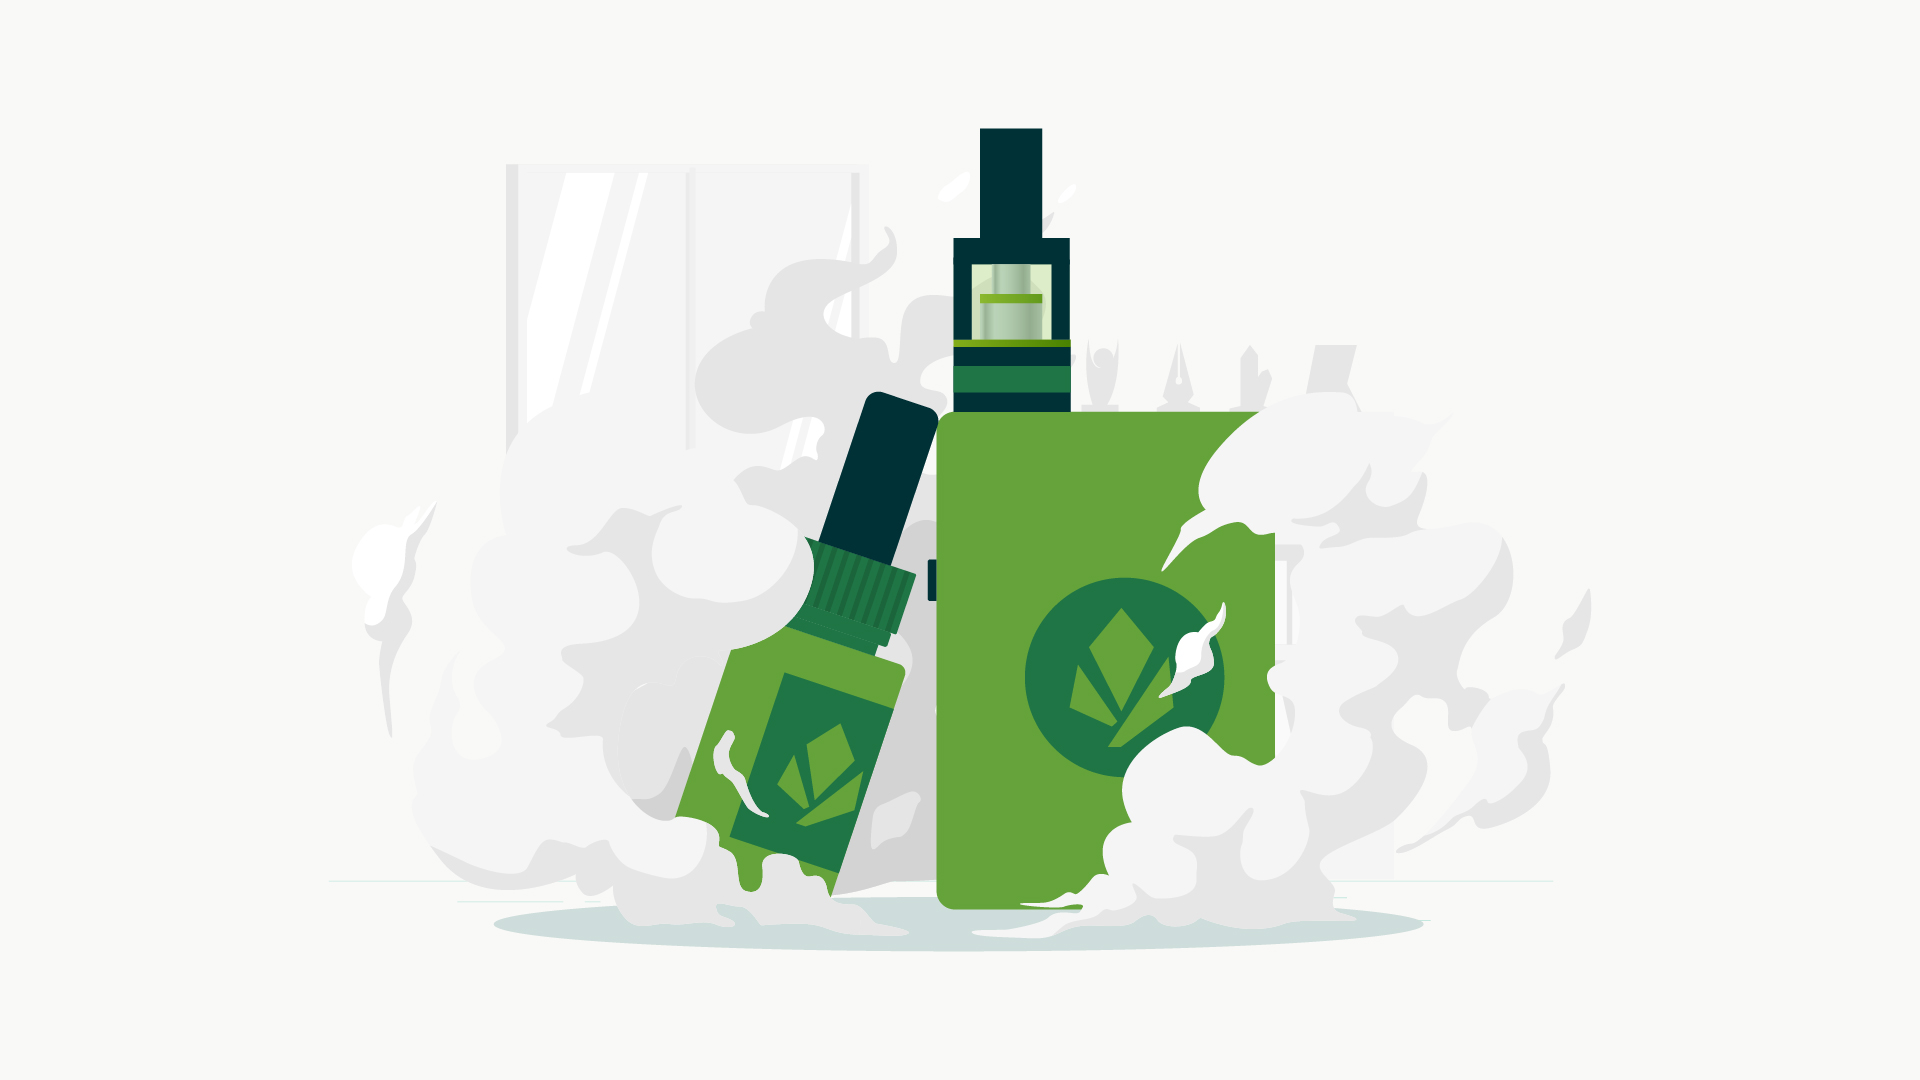 There is a difference between cannabidiol oil and CBD vape oil. So, can you vape CBD oil as you would regular CBD oil? In this article, we will answer this burning question.